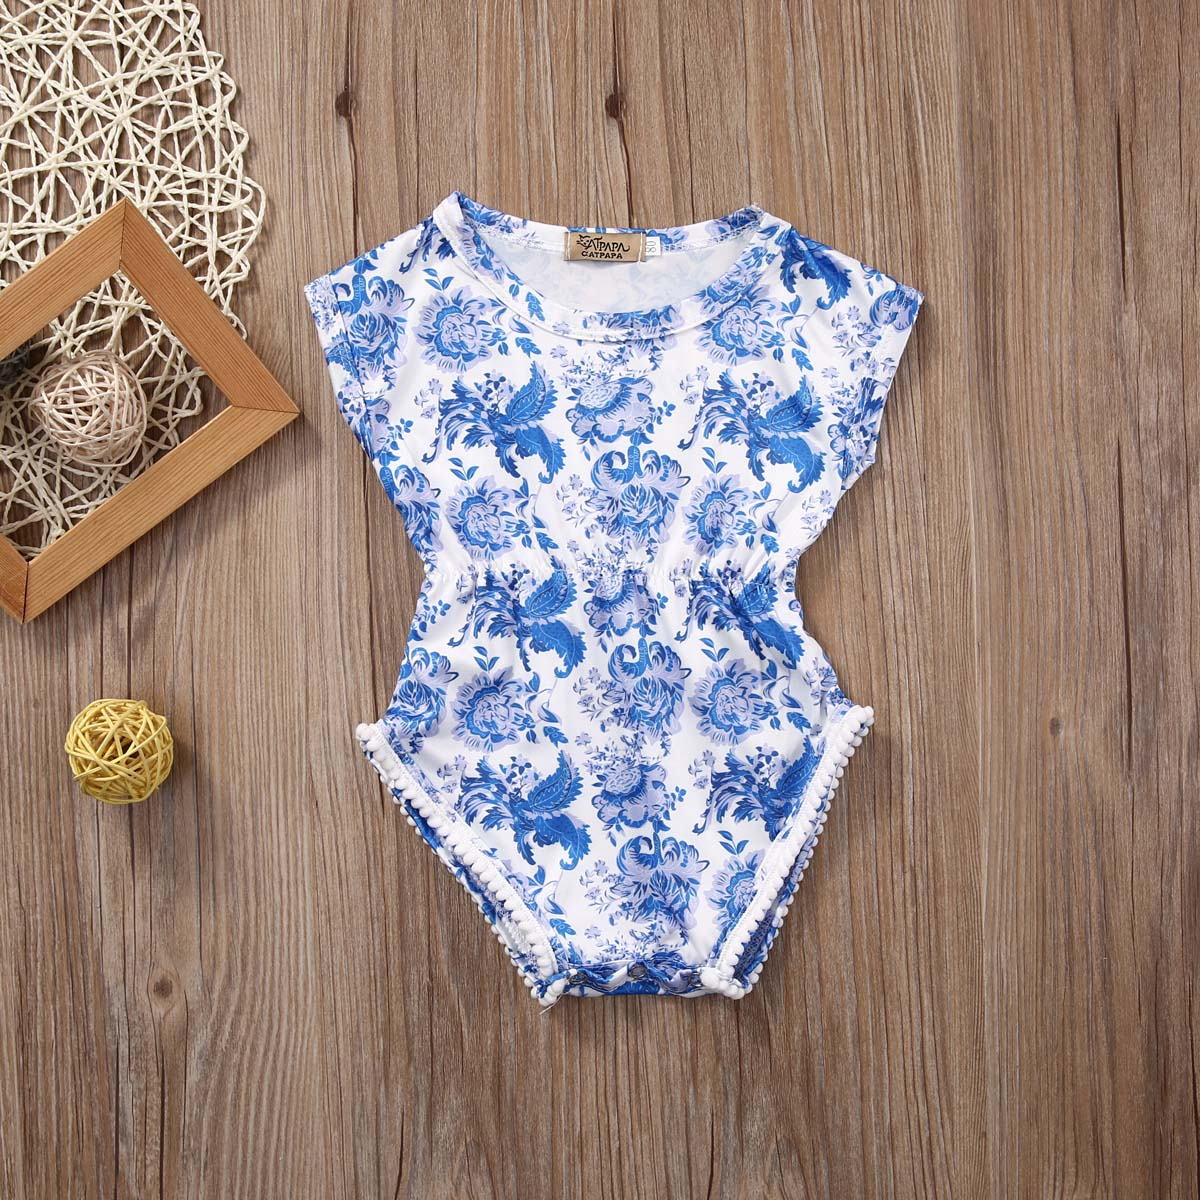 58c0ef7f8cca 2018 New Infant Newborn Baby Floral blue and white Short Sleeve Bebes Girls  Romper Jumpsuit One Pieces Outfits-in Bodysuits from Mother   Kids on ...